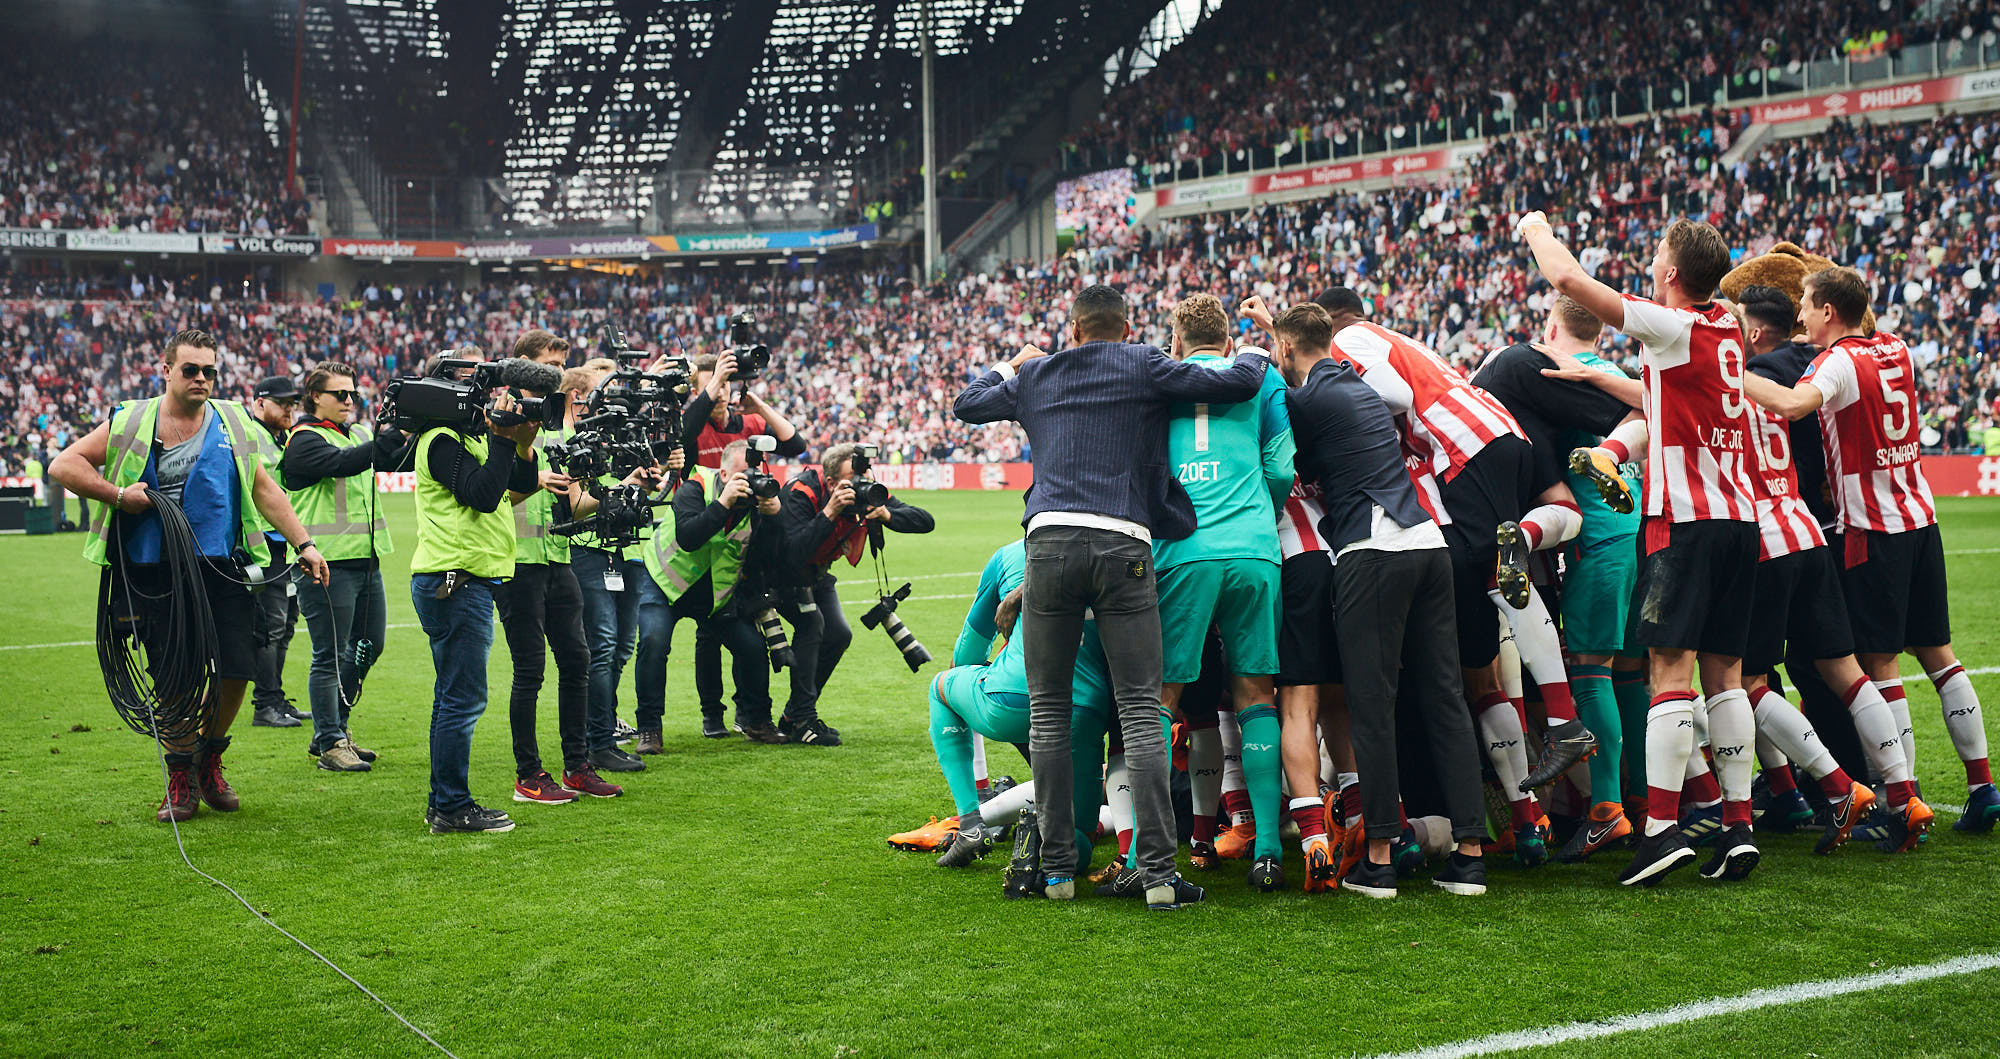 PSV Eindhoven first team takes a group photo in the Philips Stadium